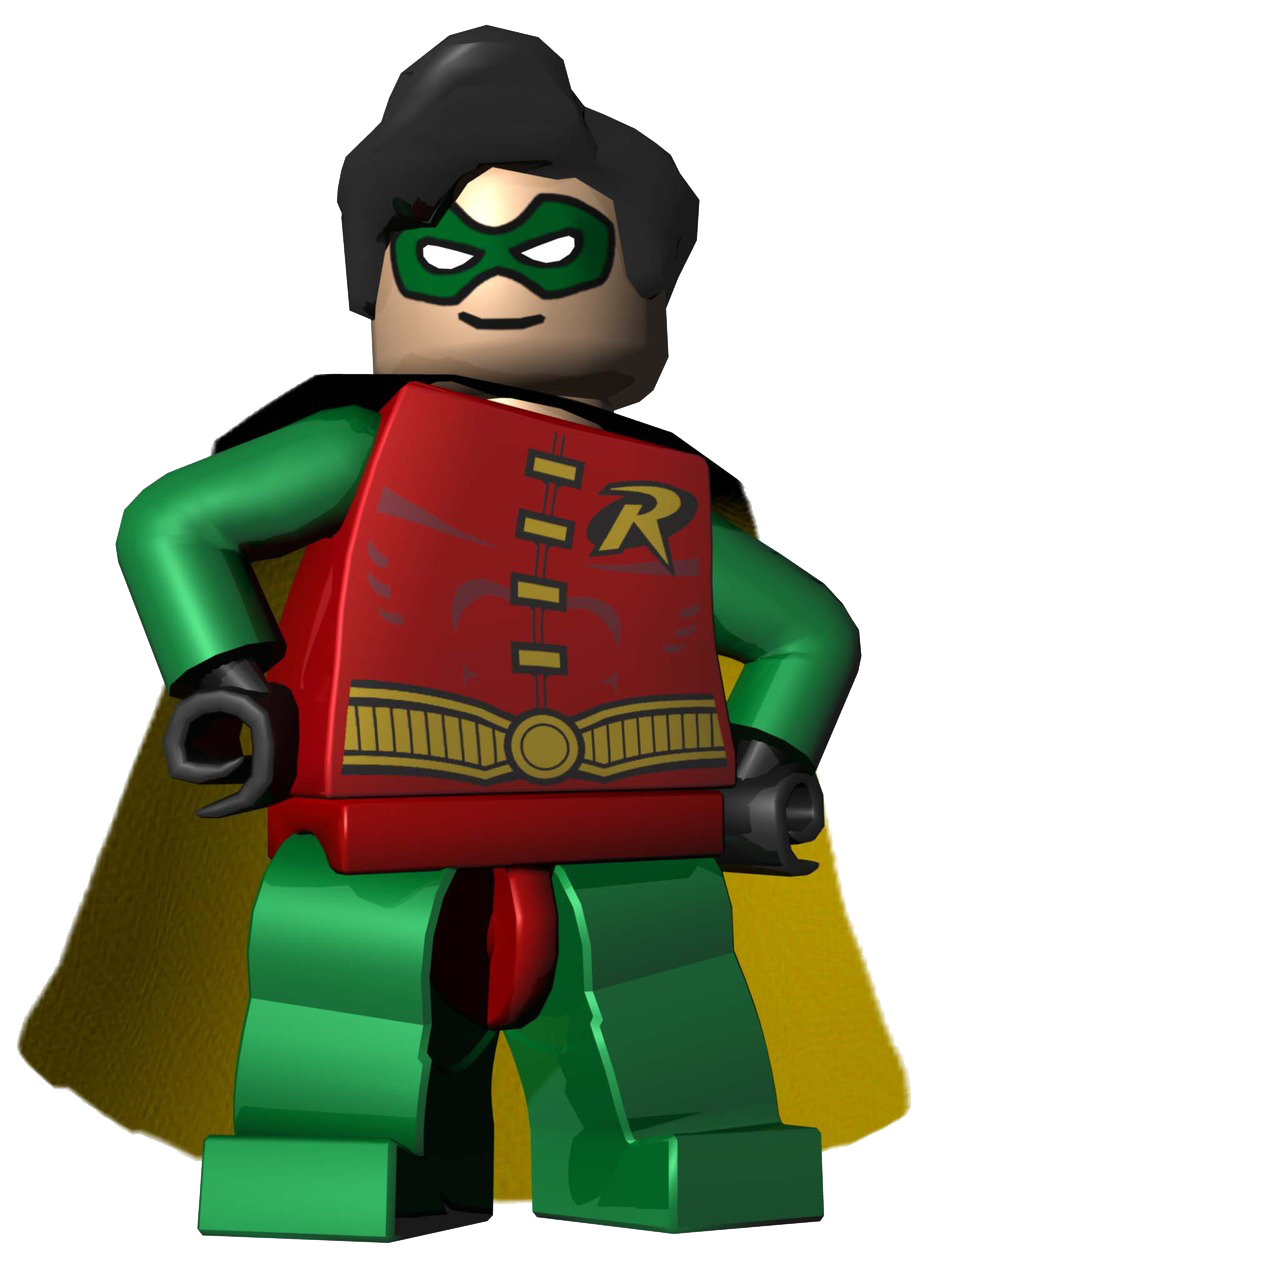 Lego Robin Transparent Background image #46624